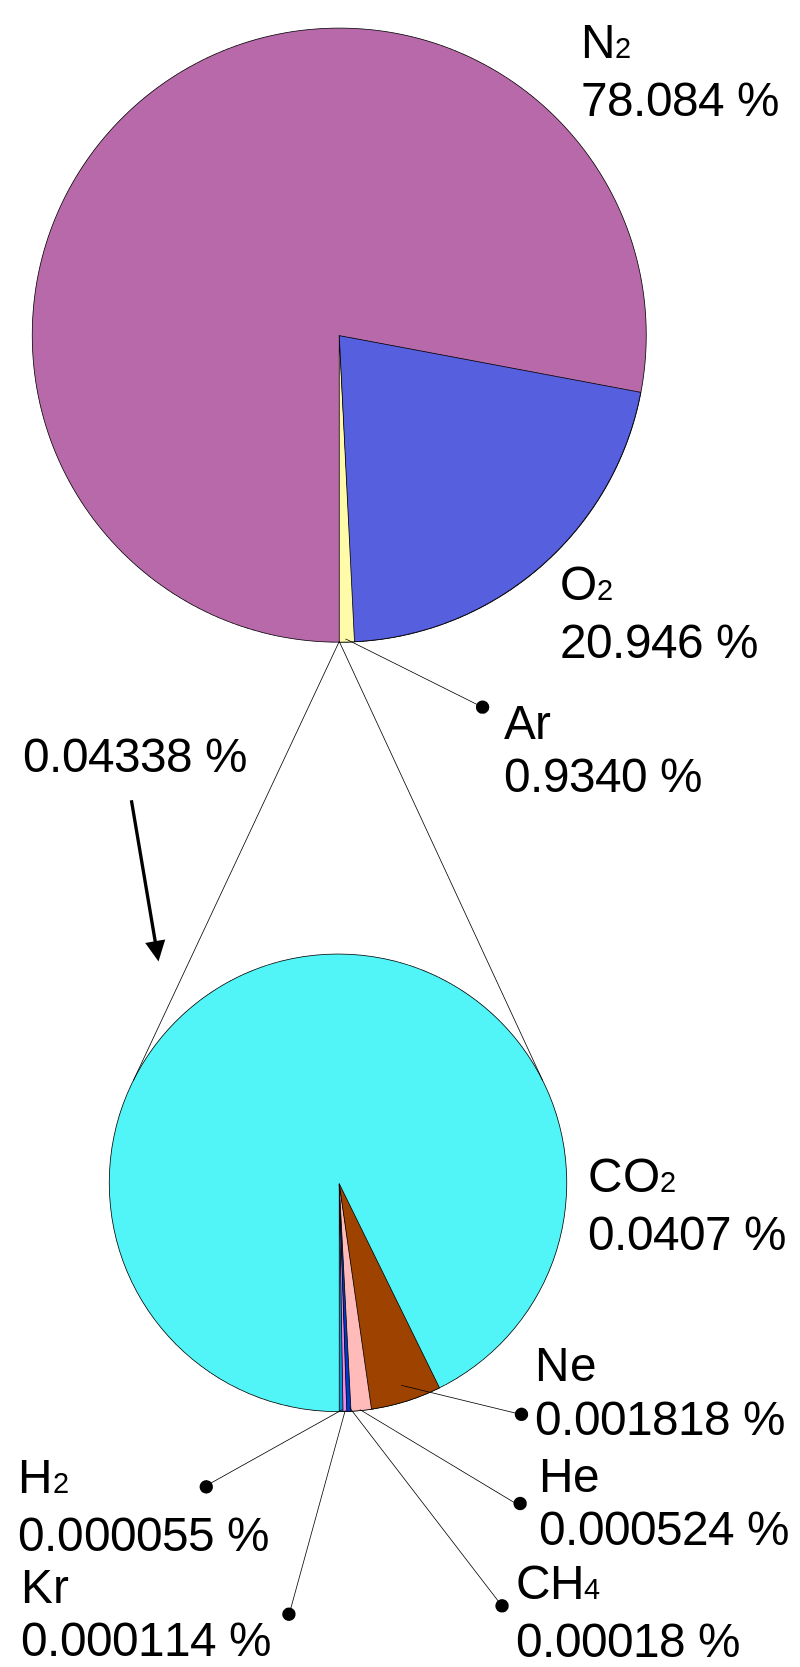 Composition of Earth's atmosphere by volume